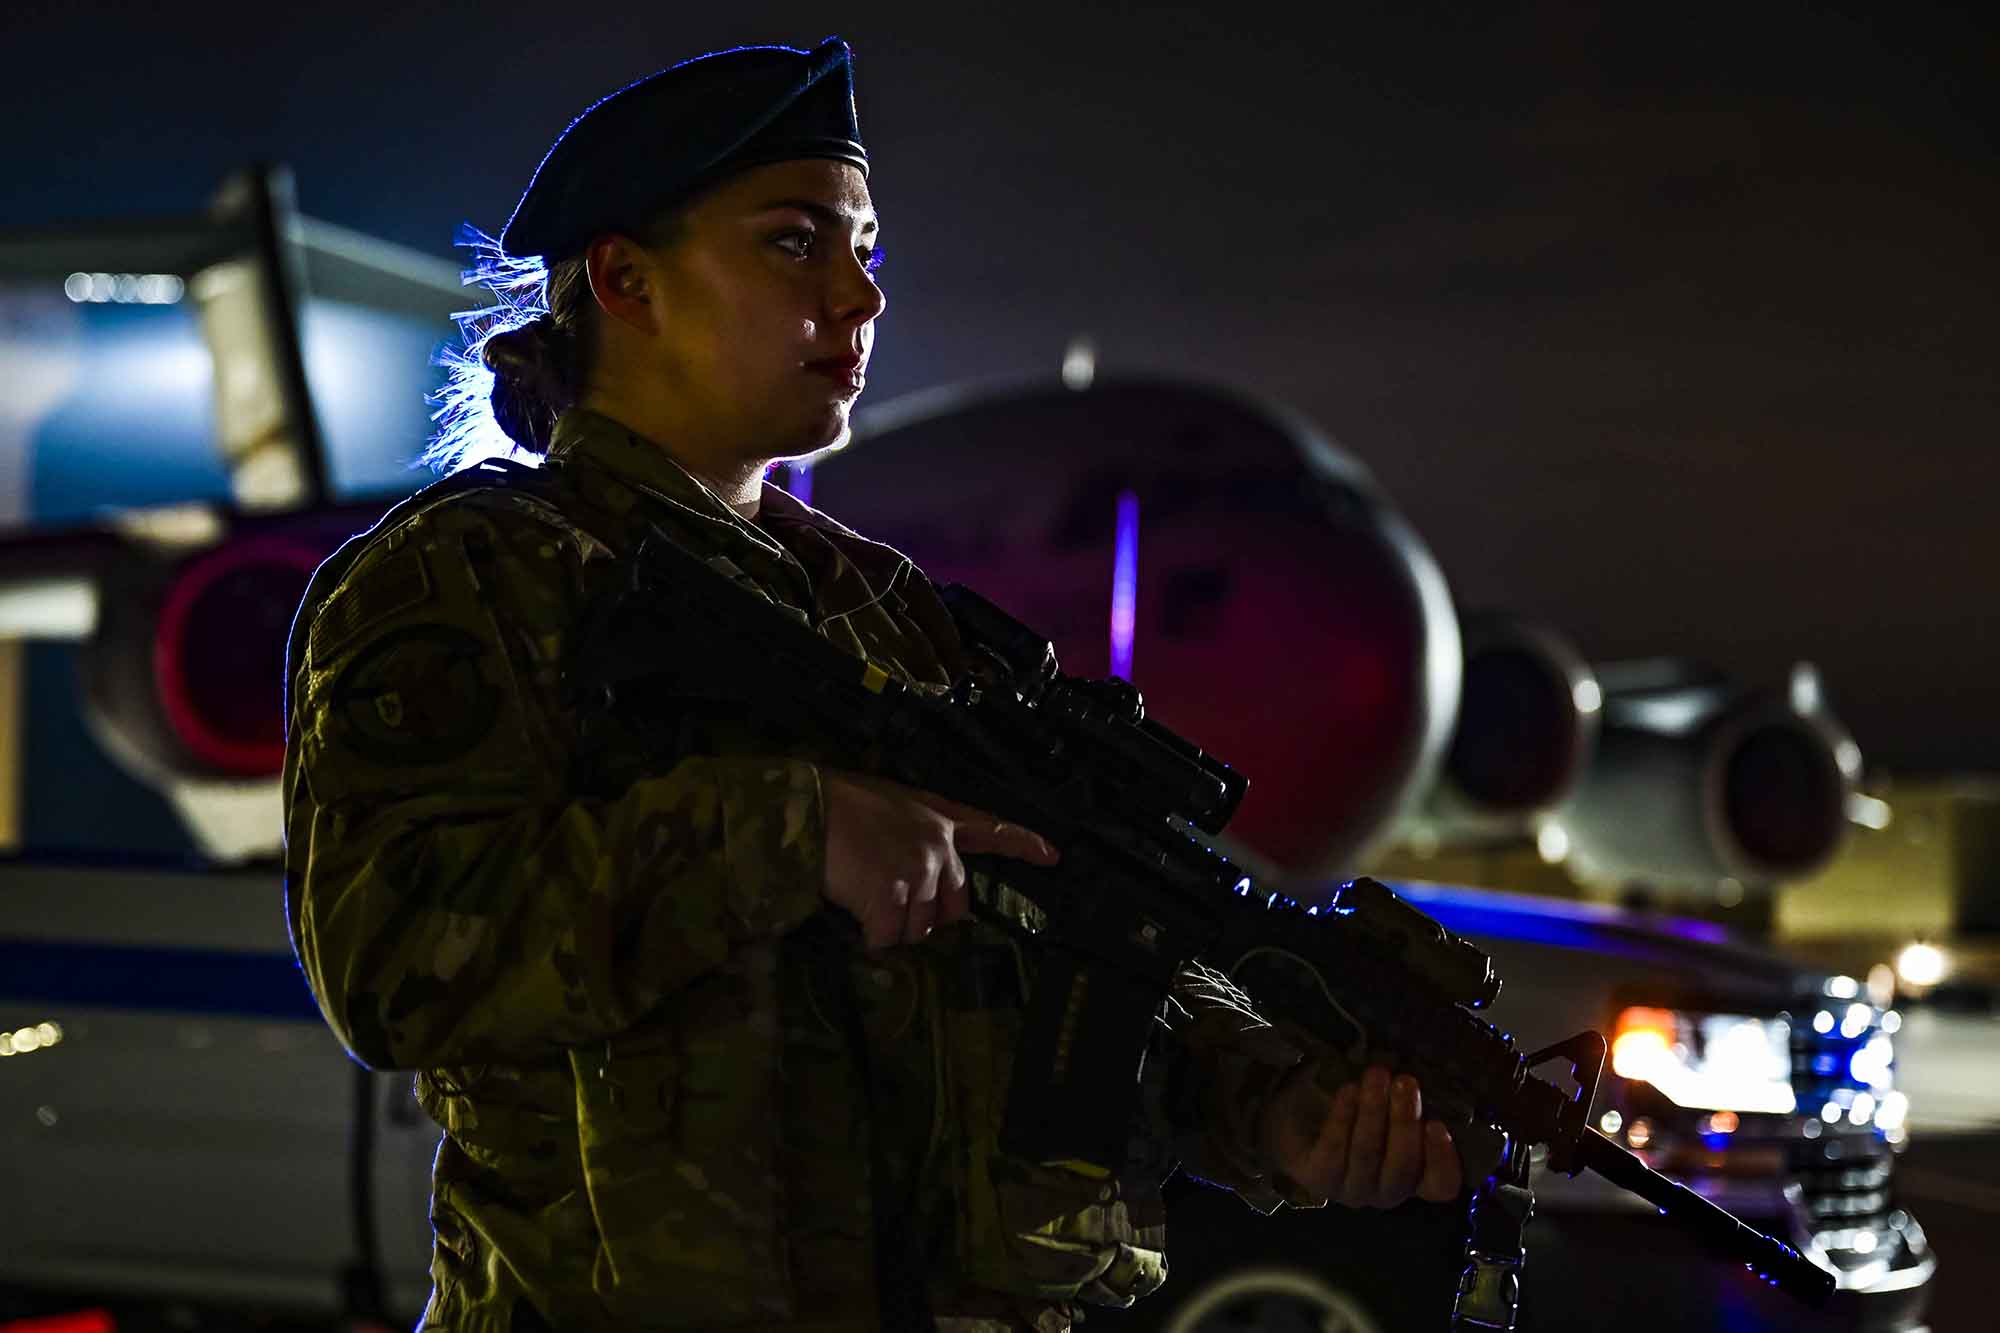 Senior Airman Alexis Williams, 911th Security Forces Squadron patrolman, stands guard in front of a C-17 Globemaster III during a routine training exercise at the Pittsburgh International Airport Air Reserve Station, Pa., Jan. 19, 2021. (Joshua J. Seybert/Air Force)